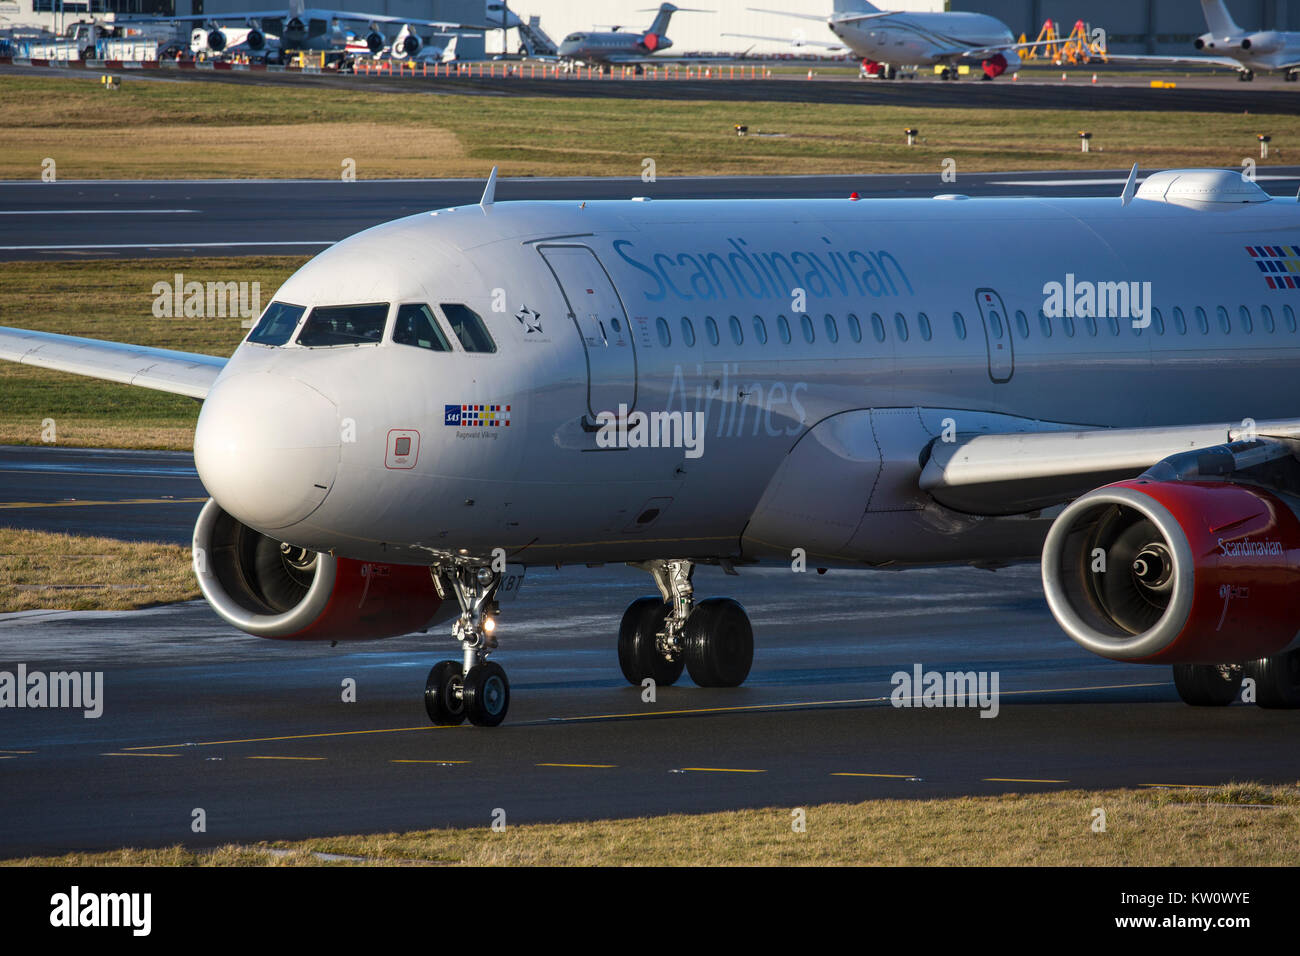 Scandinavian Airline System (SAS) Airbus A319-131 OY-KBT taxying for take off at Birmingham International Airport - Stock Image